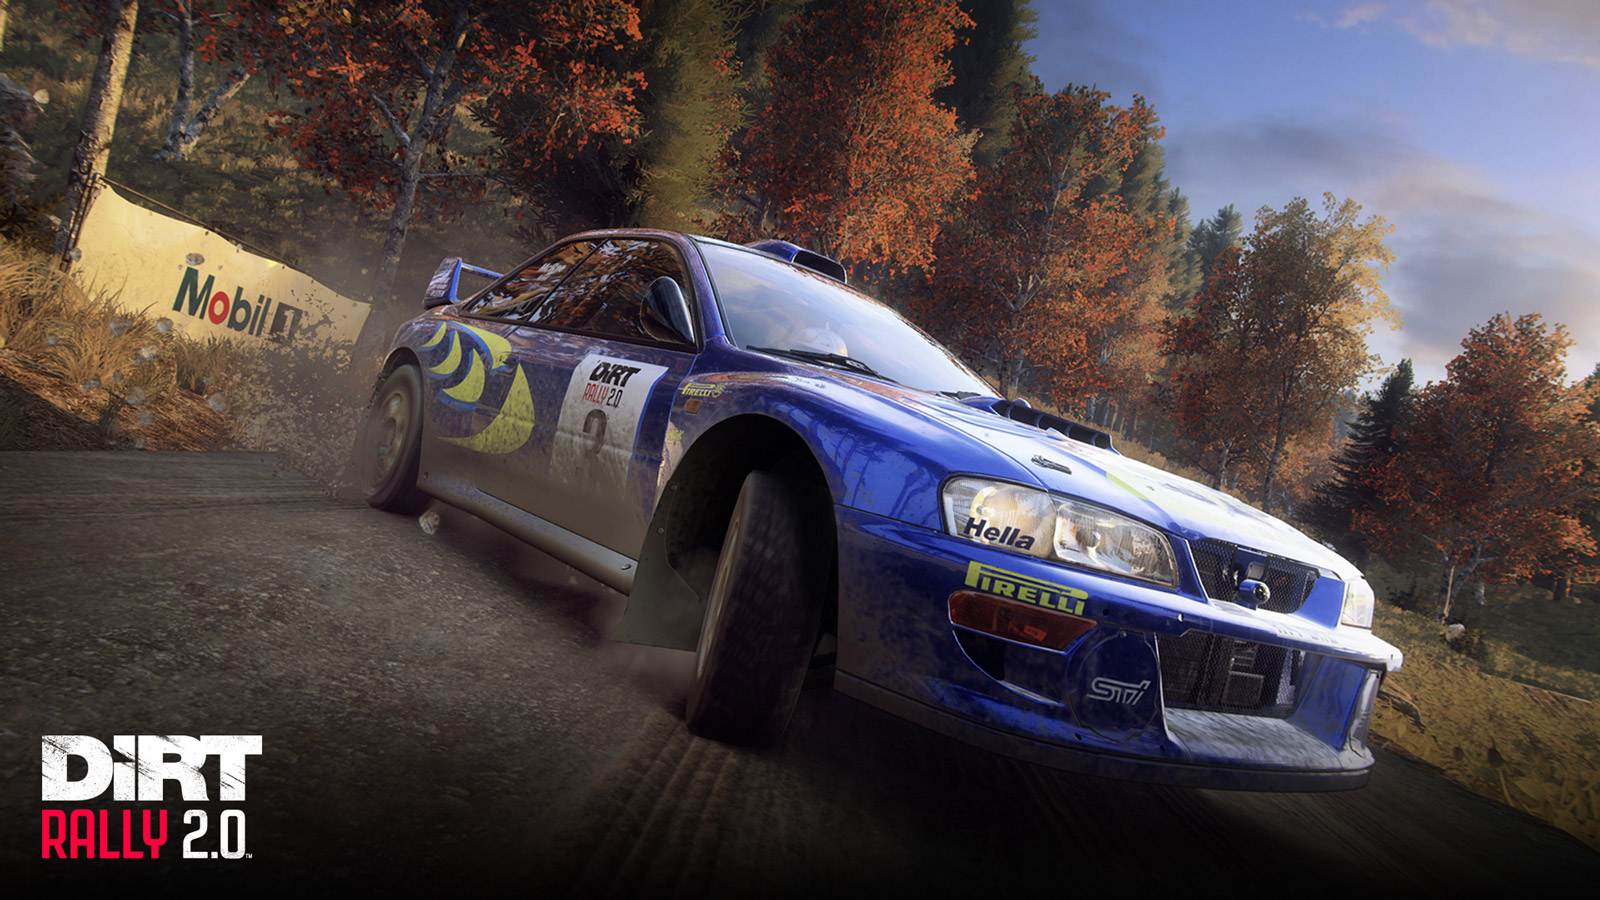 Dirt Rally 2.0 Wallpaper in 1600x900